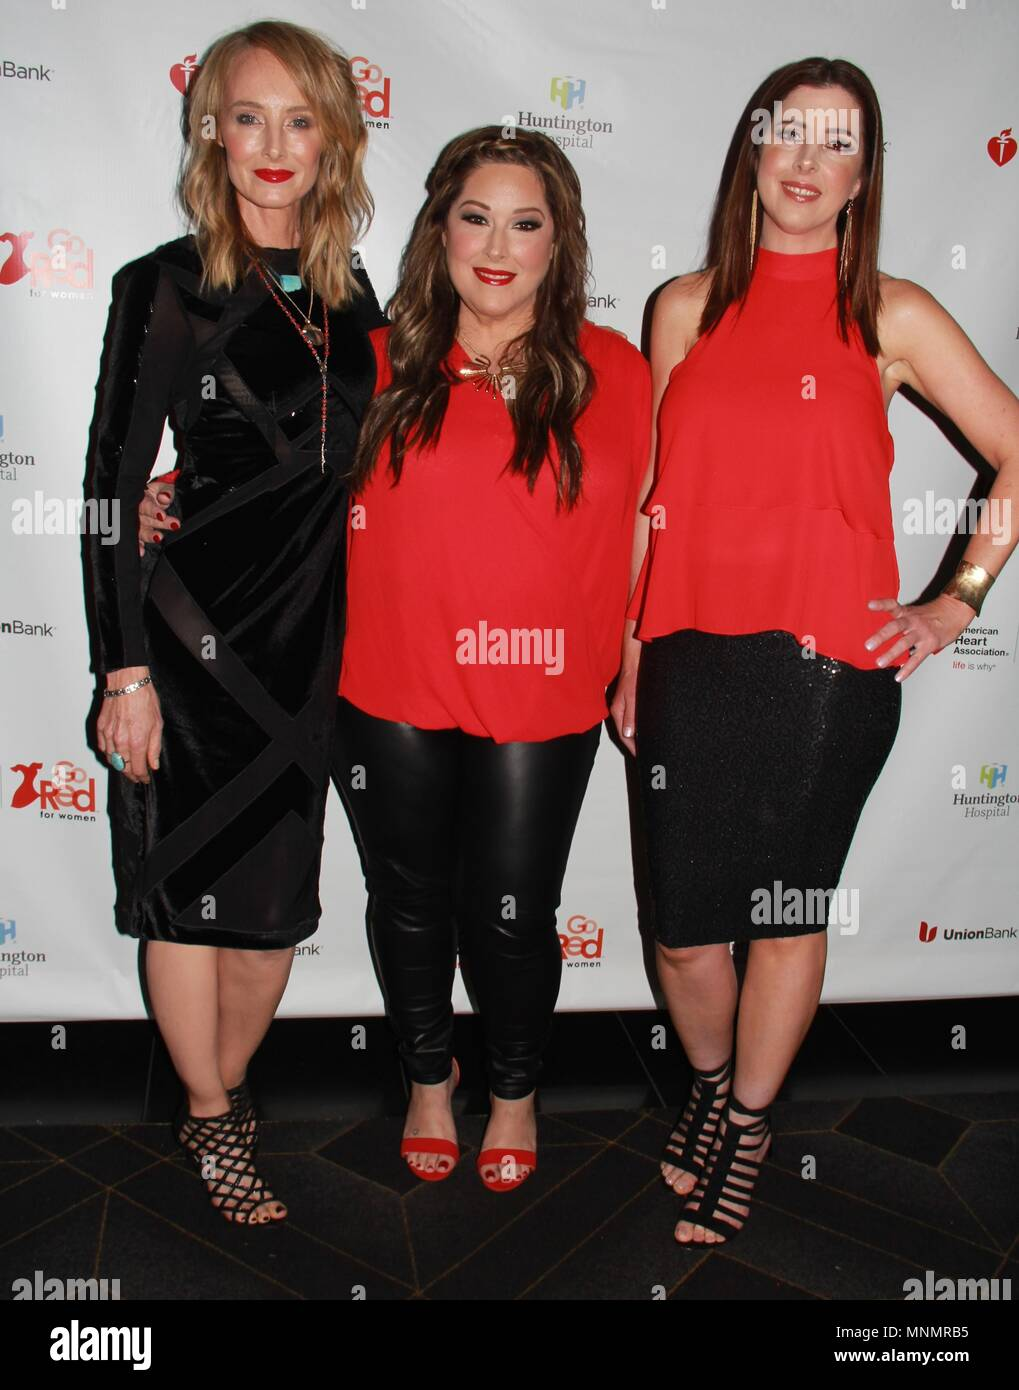 Hollywood, California, USA. 16th May, 2018. I15986CHW.The American Heart Association Presents The 3rd Annual ROCK THE RED Music Benefit .Avalon Hollywood, Los Angeles, CA USA.05/17/2018.CHYNNA PHILLIPS, CARNIE WILSON AND WENDY WILSON . © Clinton H.Wallace/Photomundo International/ Photos Inc Credit: Clinton Wallace/Globe Photos/ZUMA Wire/Alamy Live News - Stock Image